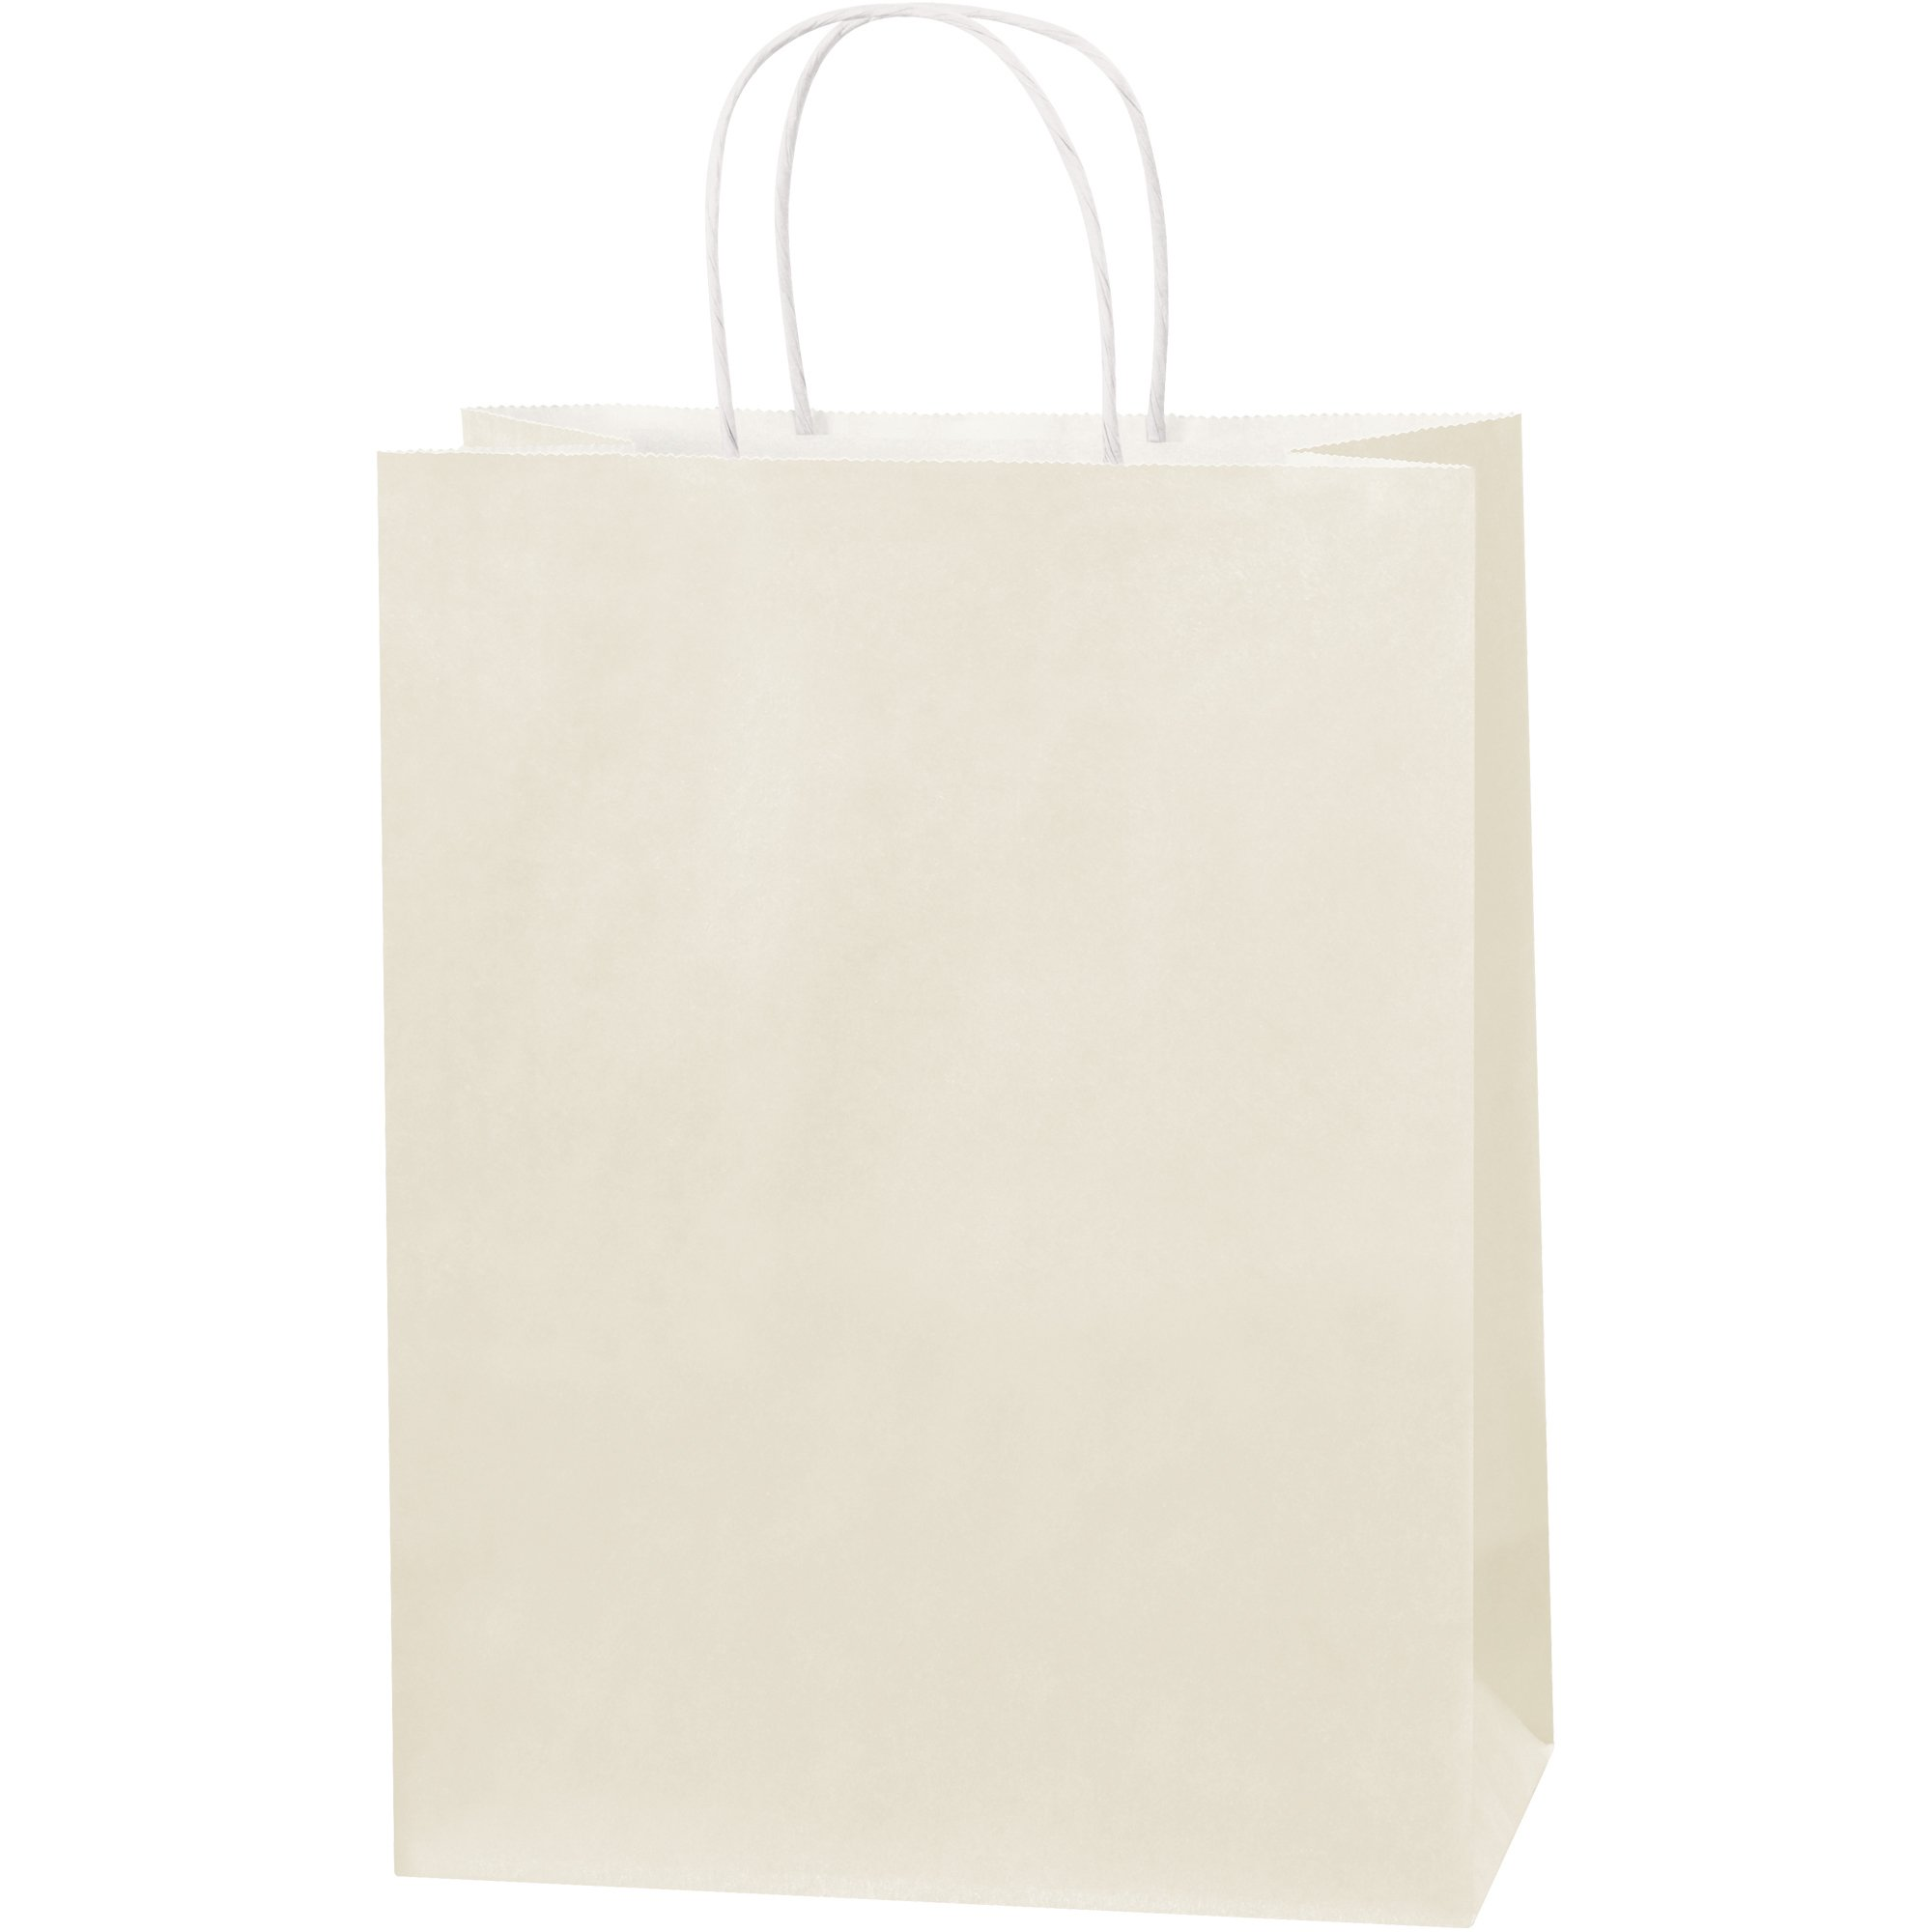 Tinted Paper Shopping Bags, 10'' x 5'' x 13'', French Vanilla, 250/Case by Choice Shipping Supplies (Image #1)